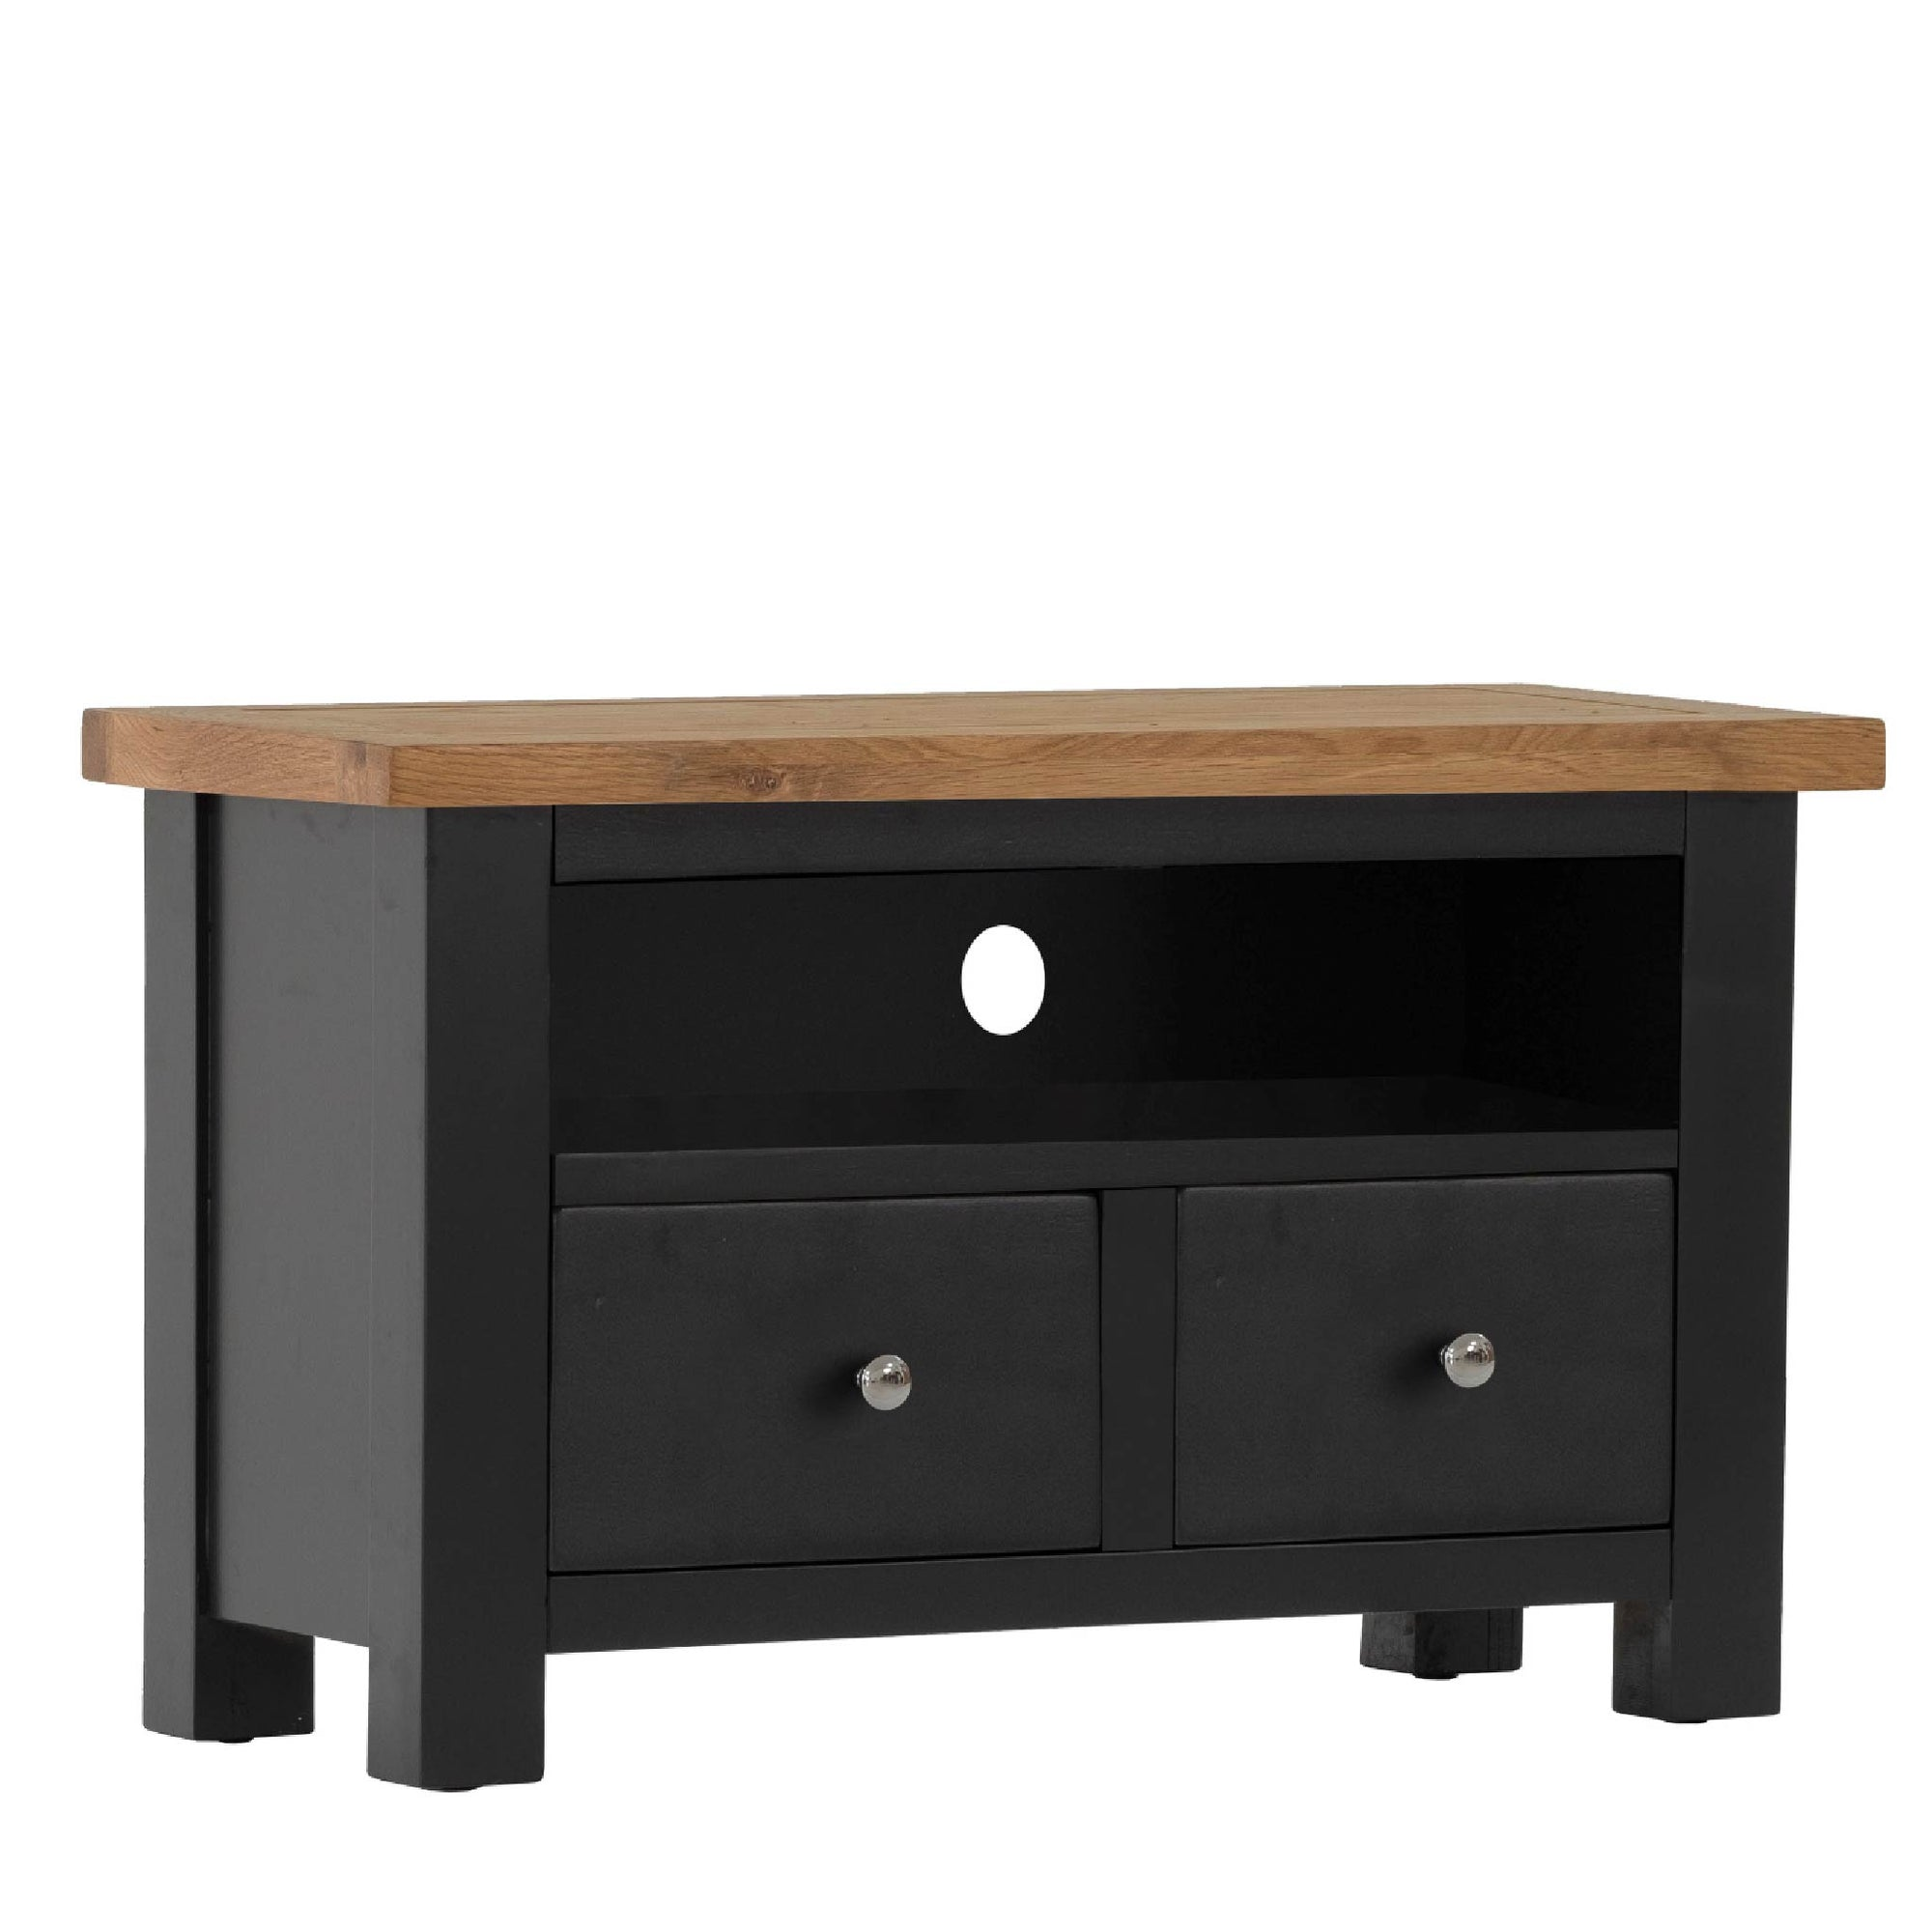 Charlestown Black TV Stand with Drawers by Roseland Furniture